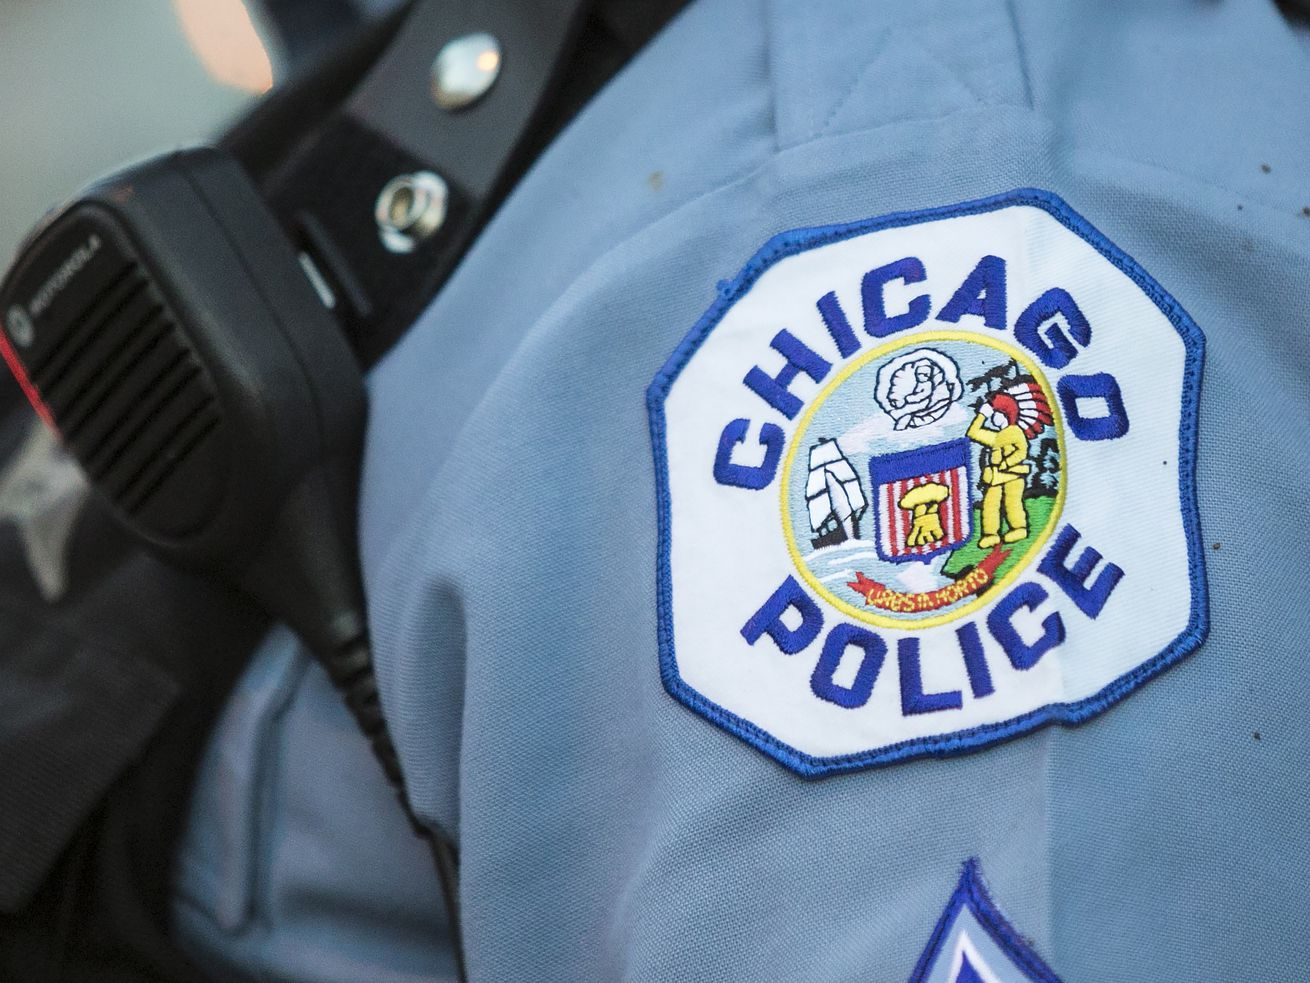 Two people were shot in a business April 16, 2021 in Lawndale.